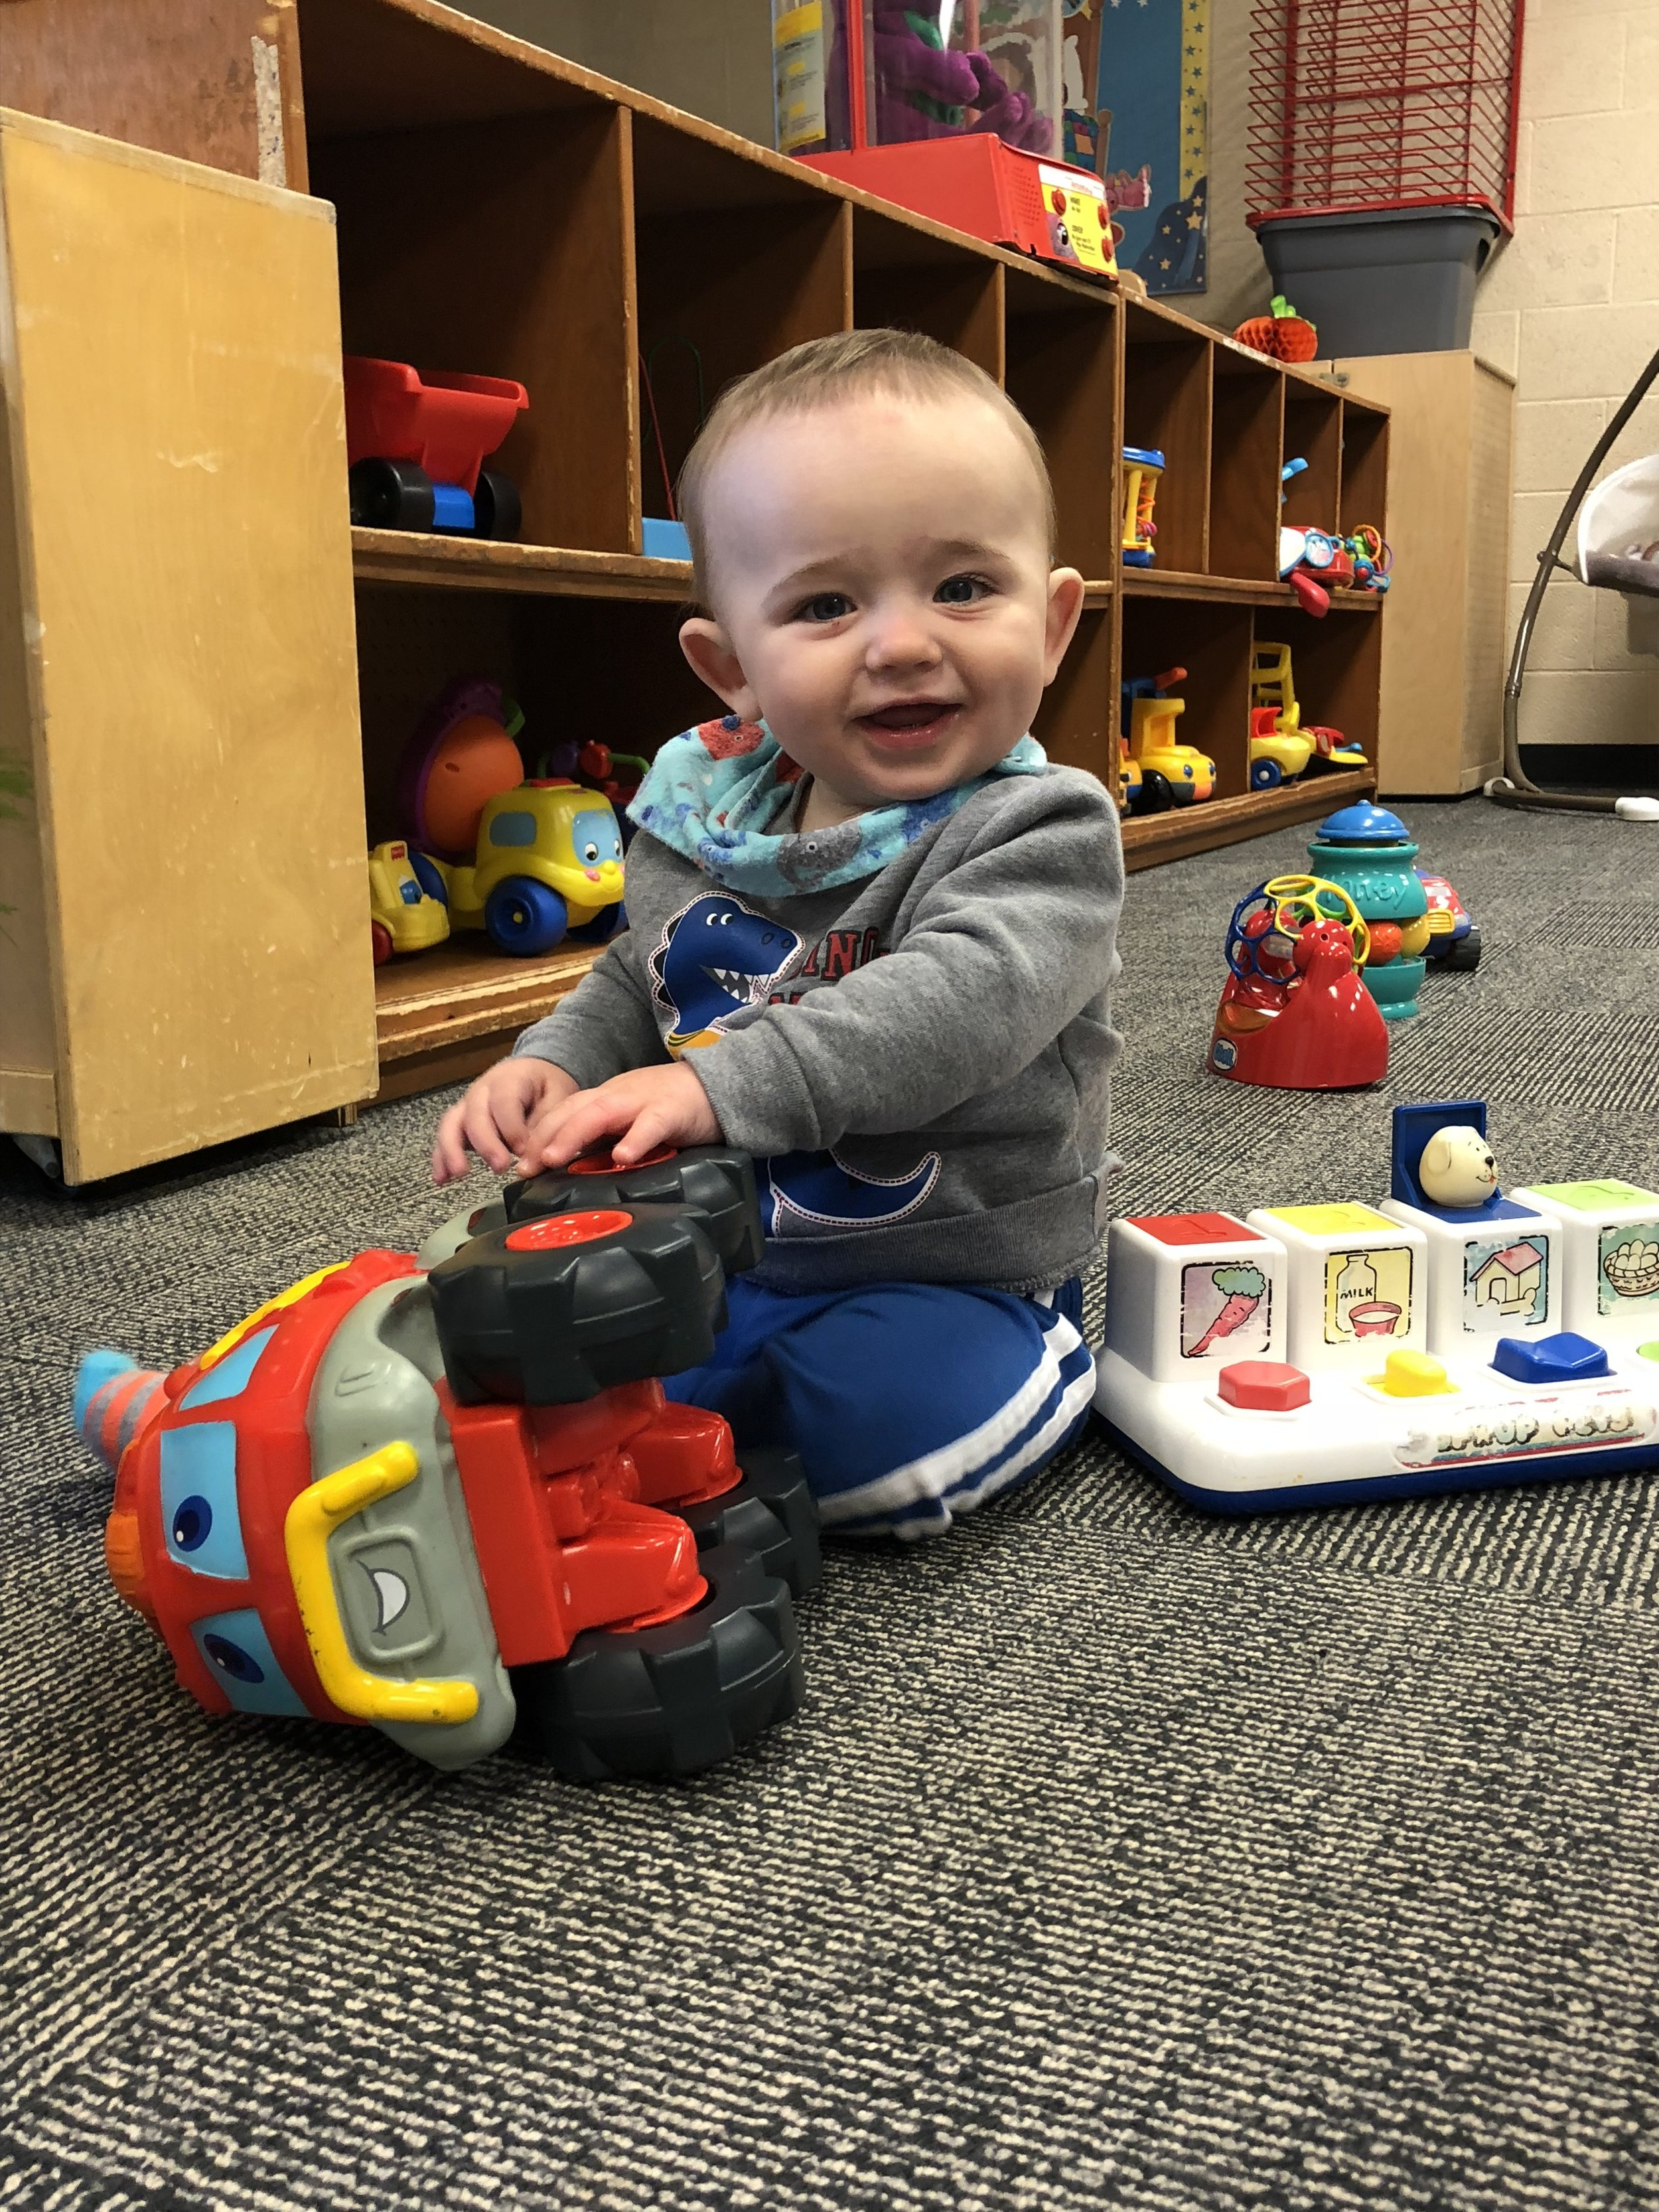 Infants and Toddlers - We here at Shores Child Care Center Know how hard it is to leave your precious baby and return to work. We make the transition easier for you and your baby.